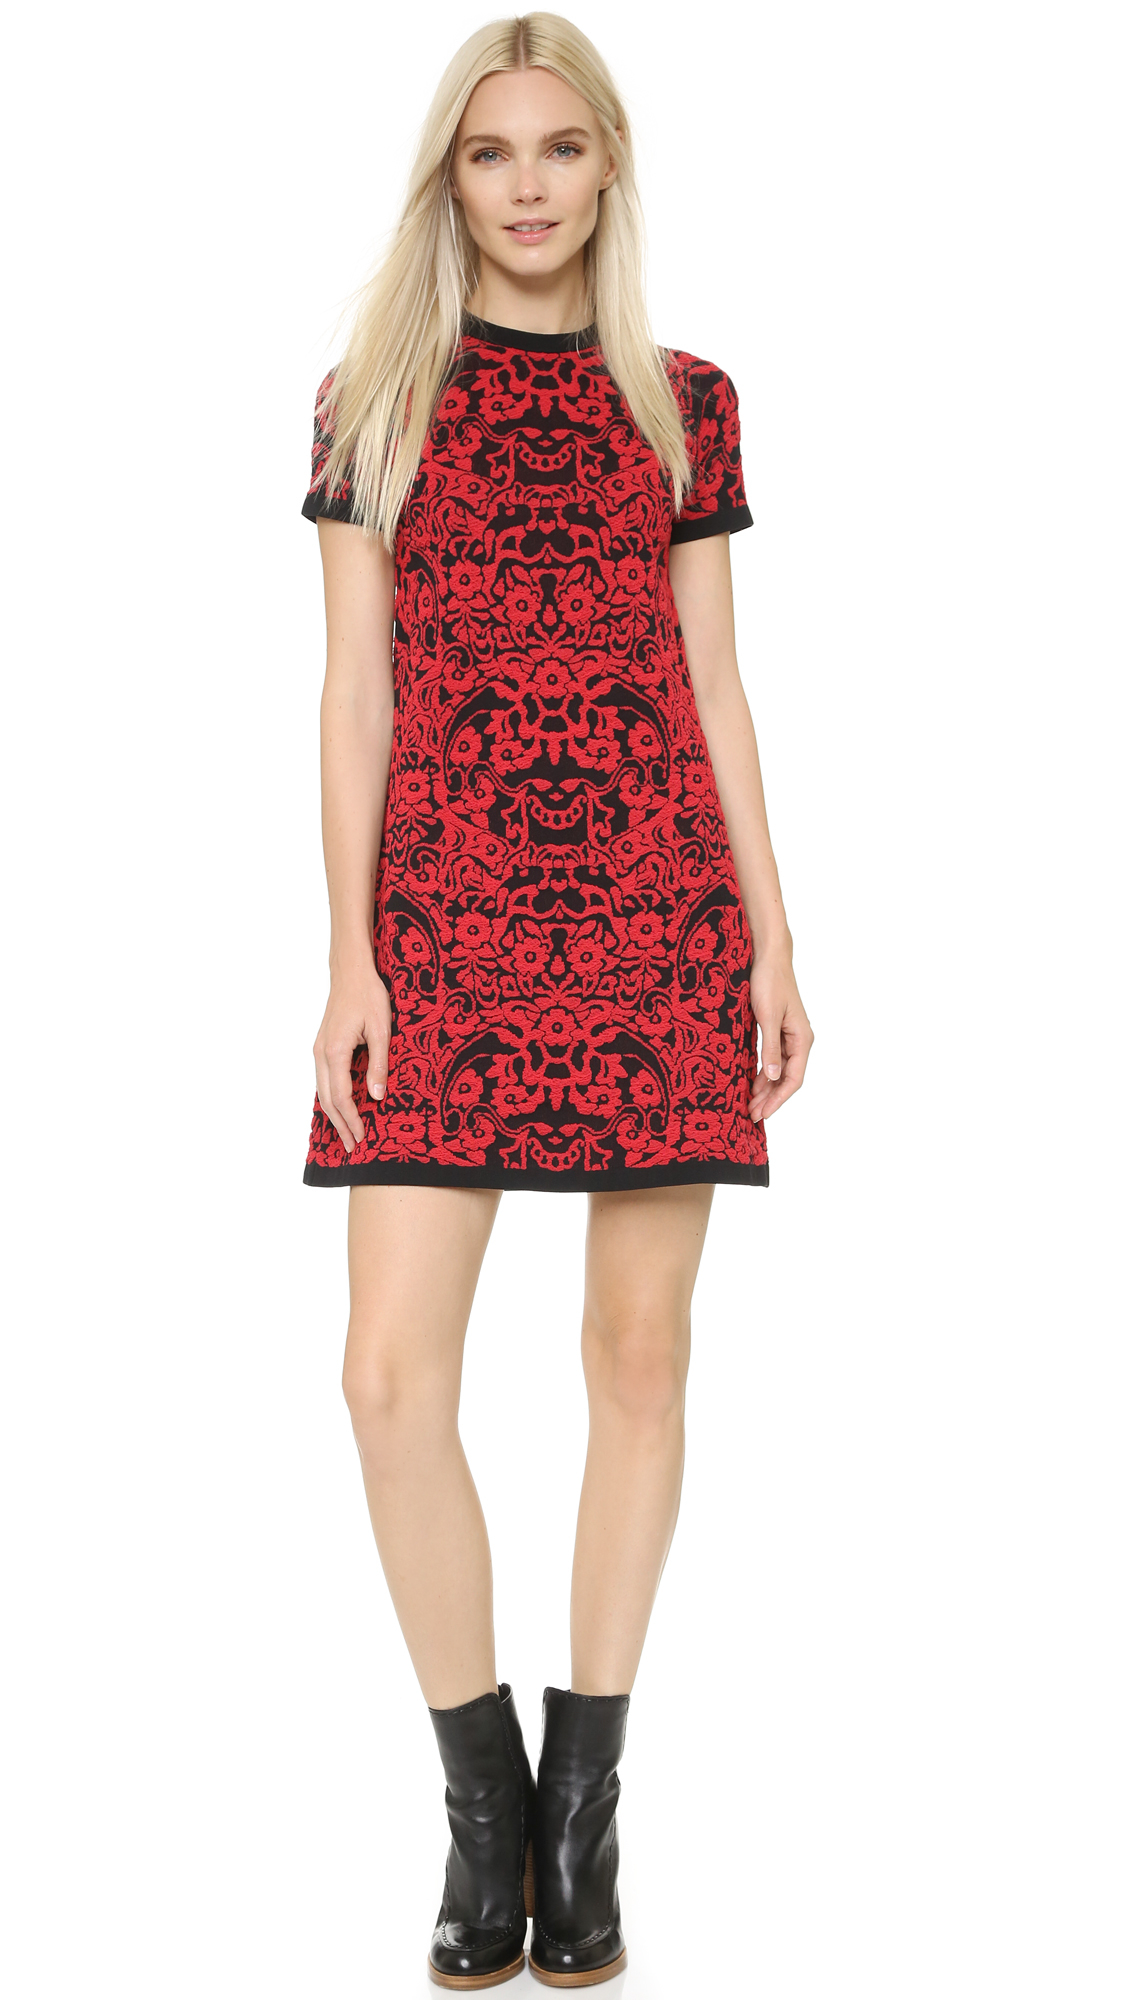 M missoni Short Sleeve Dress - Red in Black - Lyst